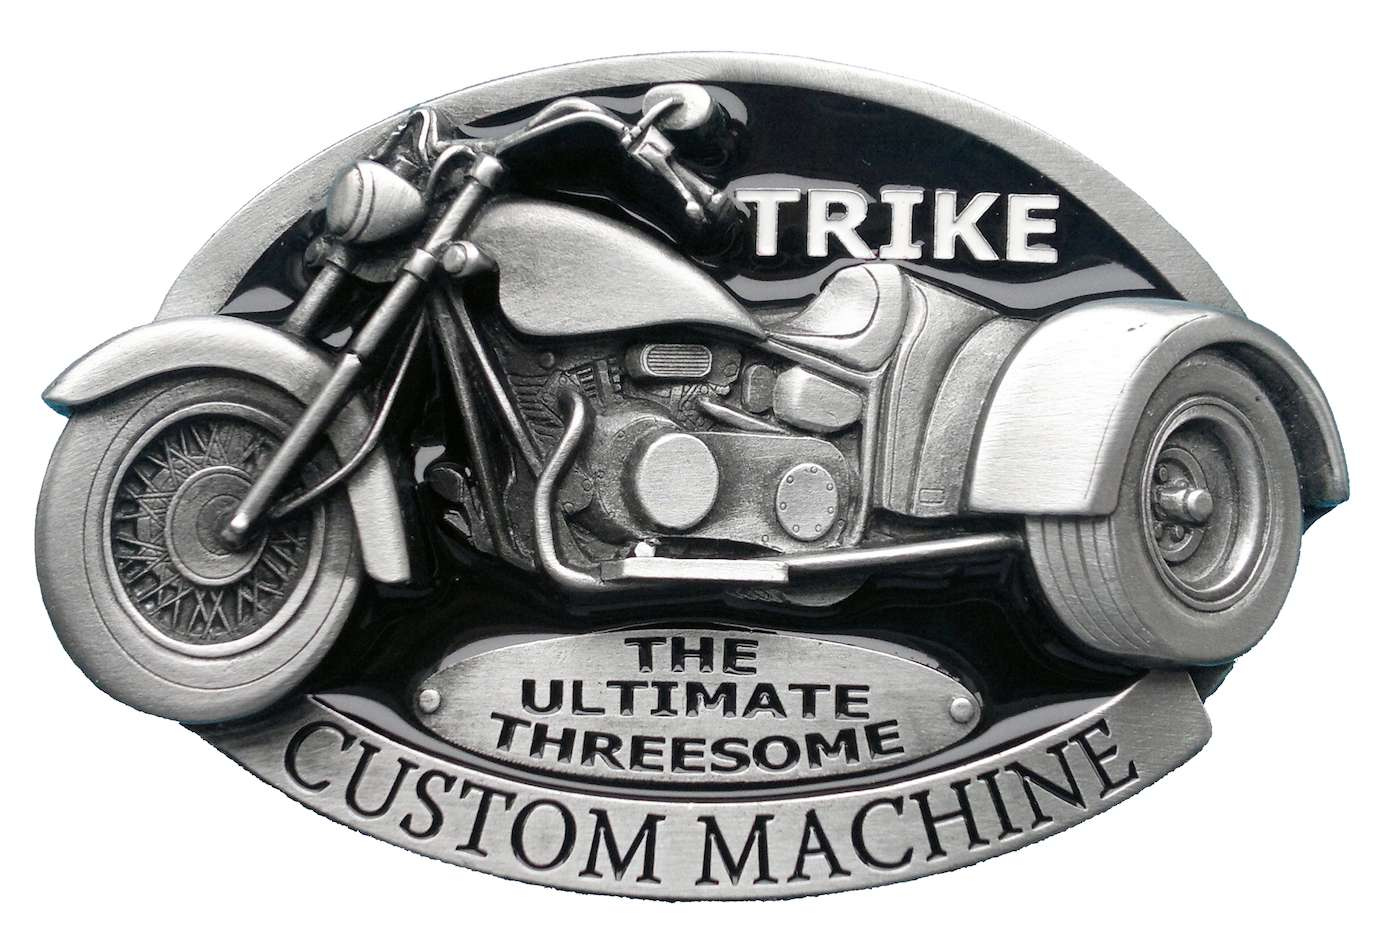 Trike Custom Machine Black